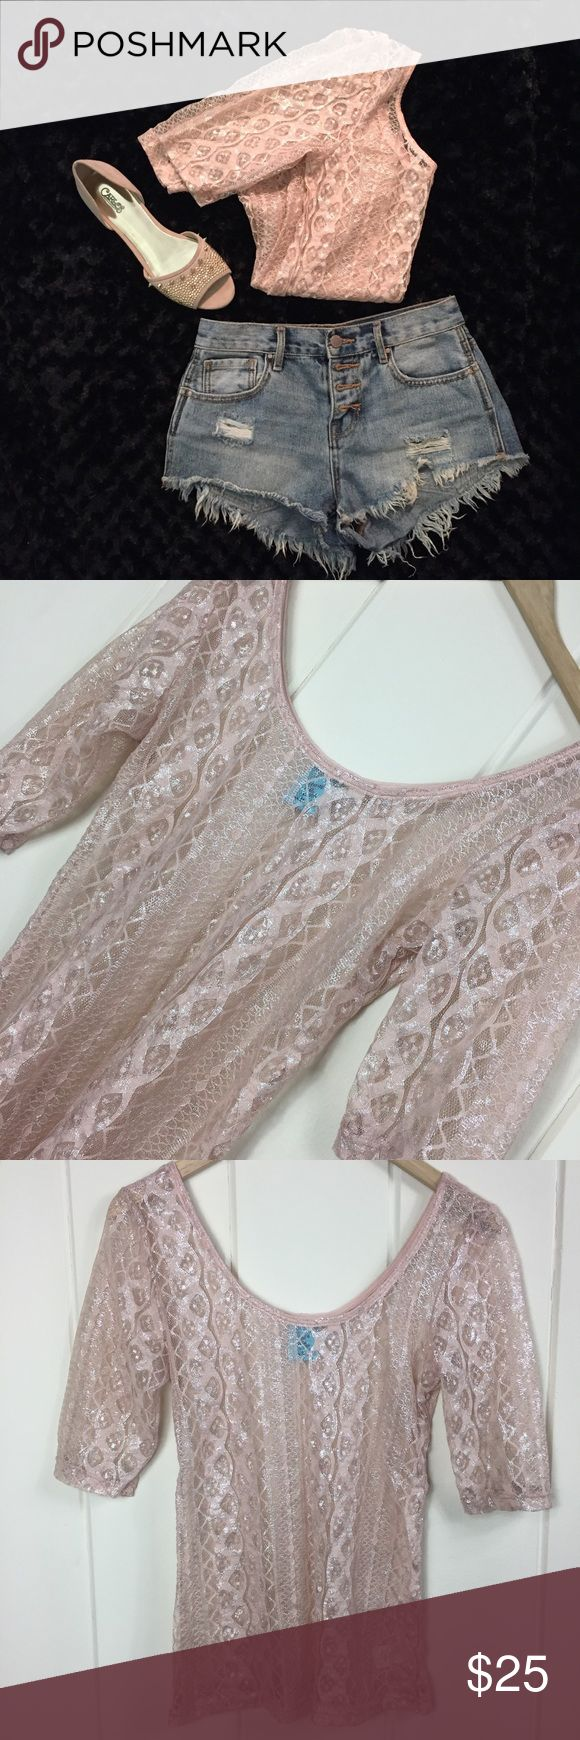 h.i.p. Sheer Lace 1/2 Sleeve Pink Silver Blouse 💕 One-of-a-kind gorgeous top! 😍 EUC (Excellent Used Condition)! 🙌🏼 No snags or pulls or stains! Would be perfect for a summer festival night or for the office (with a camisole underneath) or even as a sexy bikini cover up! Super sheer, beautiful and intricate lace design in a dusty pink with a silver sheen to it. Iridescent, so the fabric sometimes looks more/less pink, depending on the lighting. Size Medium. Has some stretch. Made in USA…